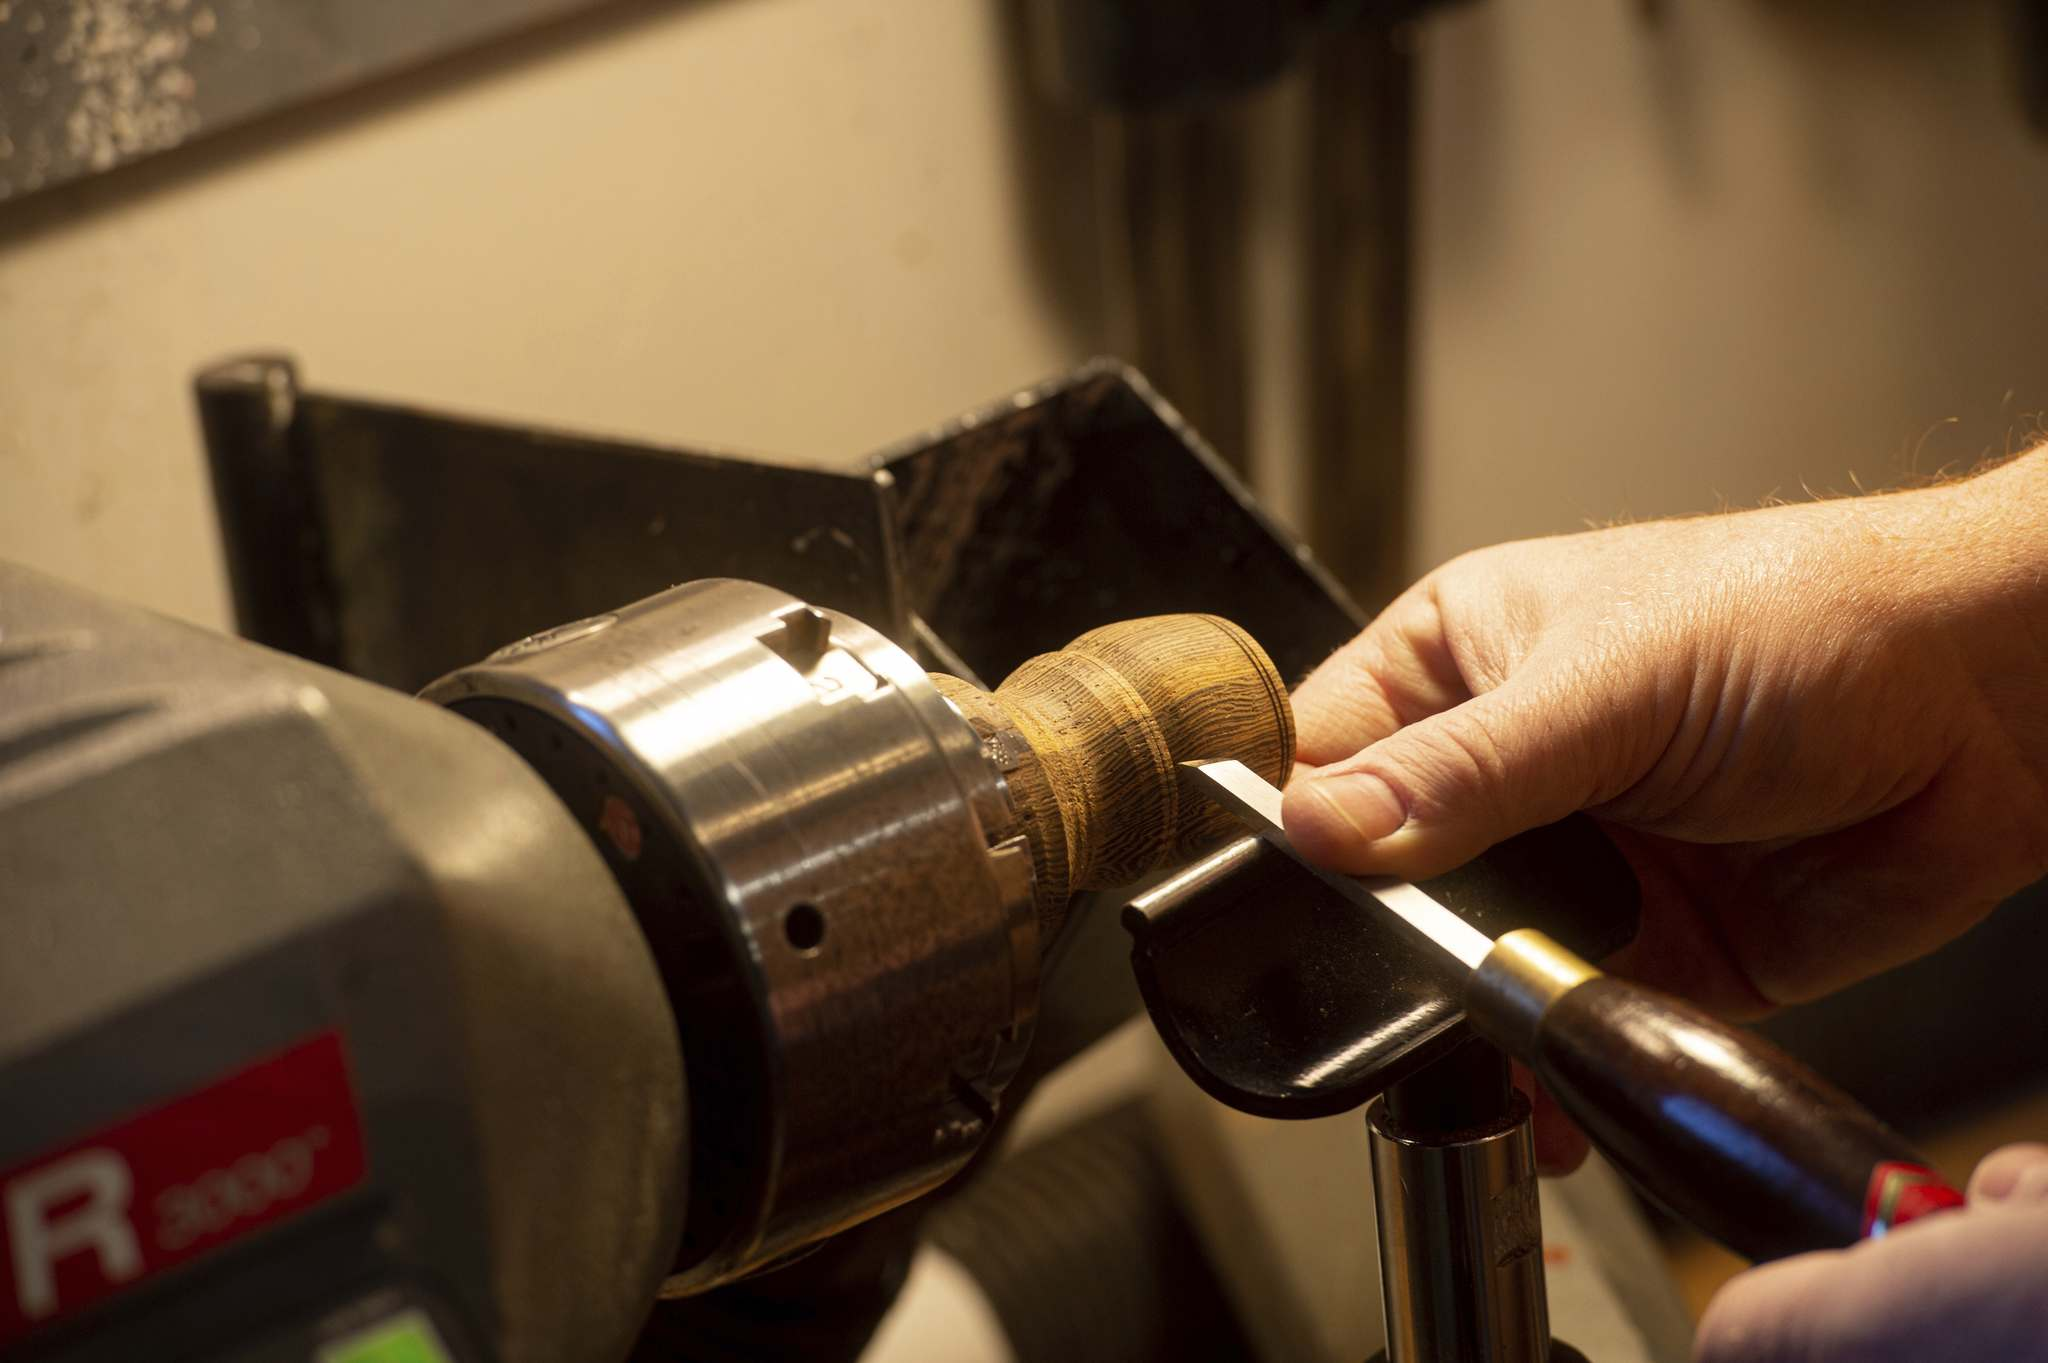 Kydd crafts a wooden shaving brush on his lathe inside his home workshop.